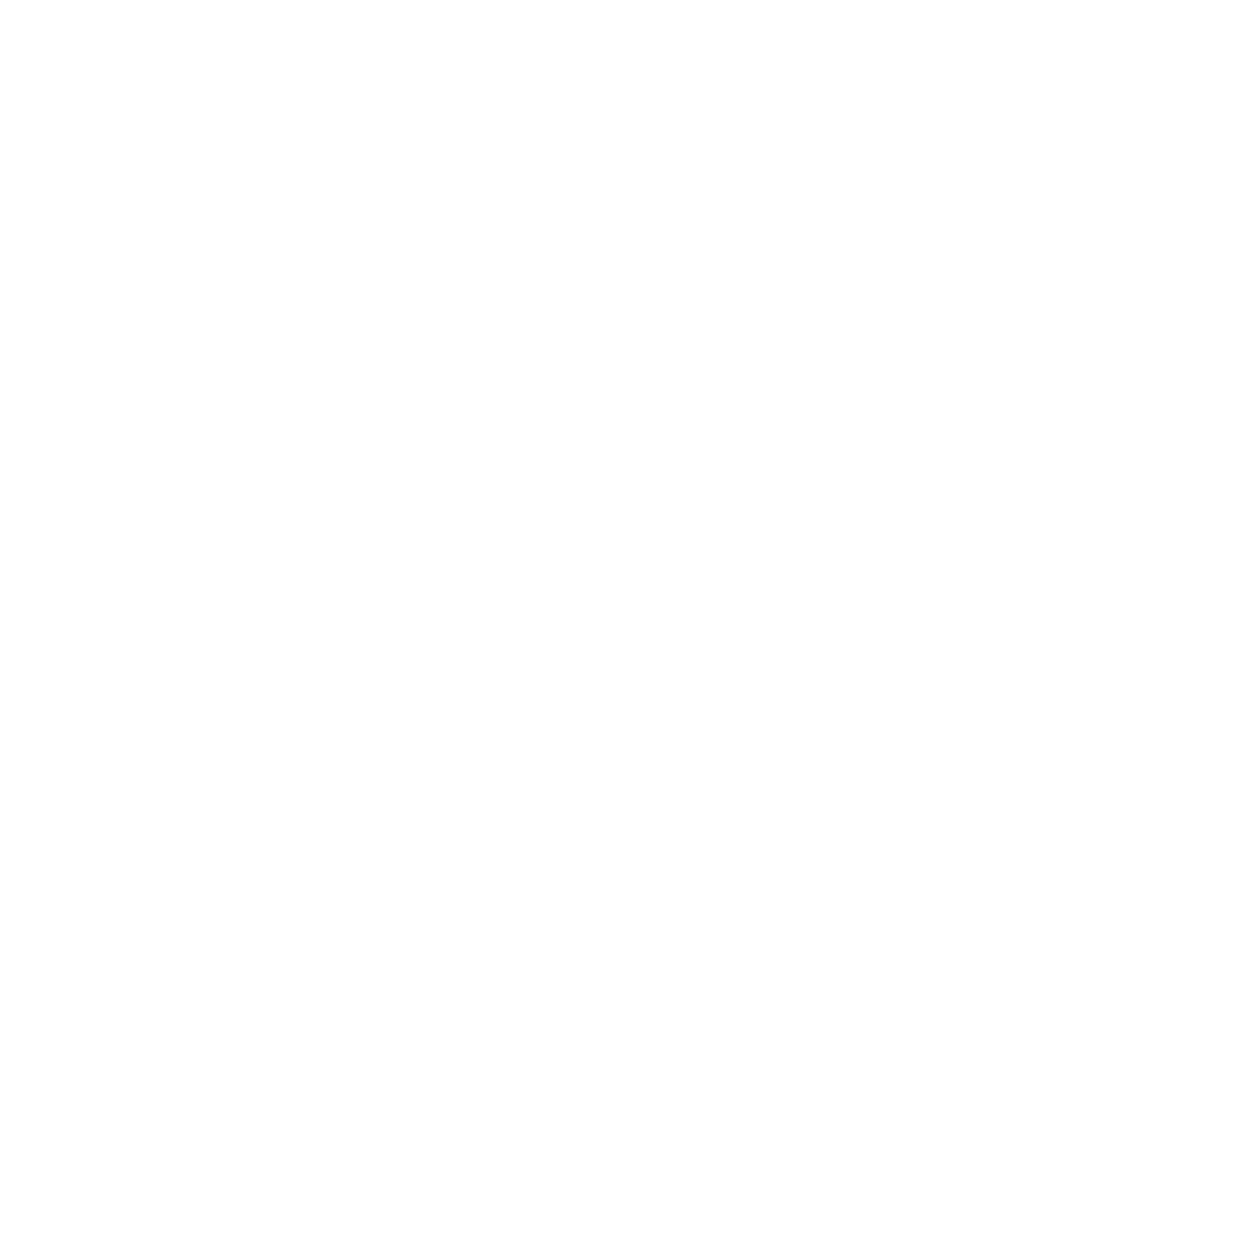 logoVENTURA-COUNTY-MEDICAL-CENTER-WHITE@2x.png